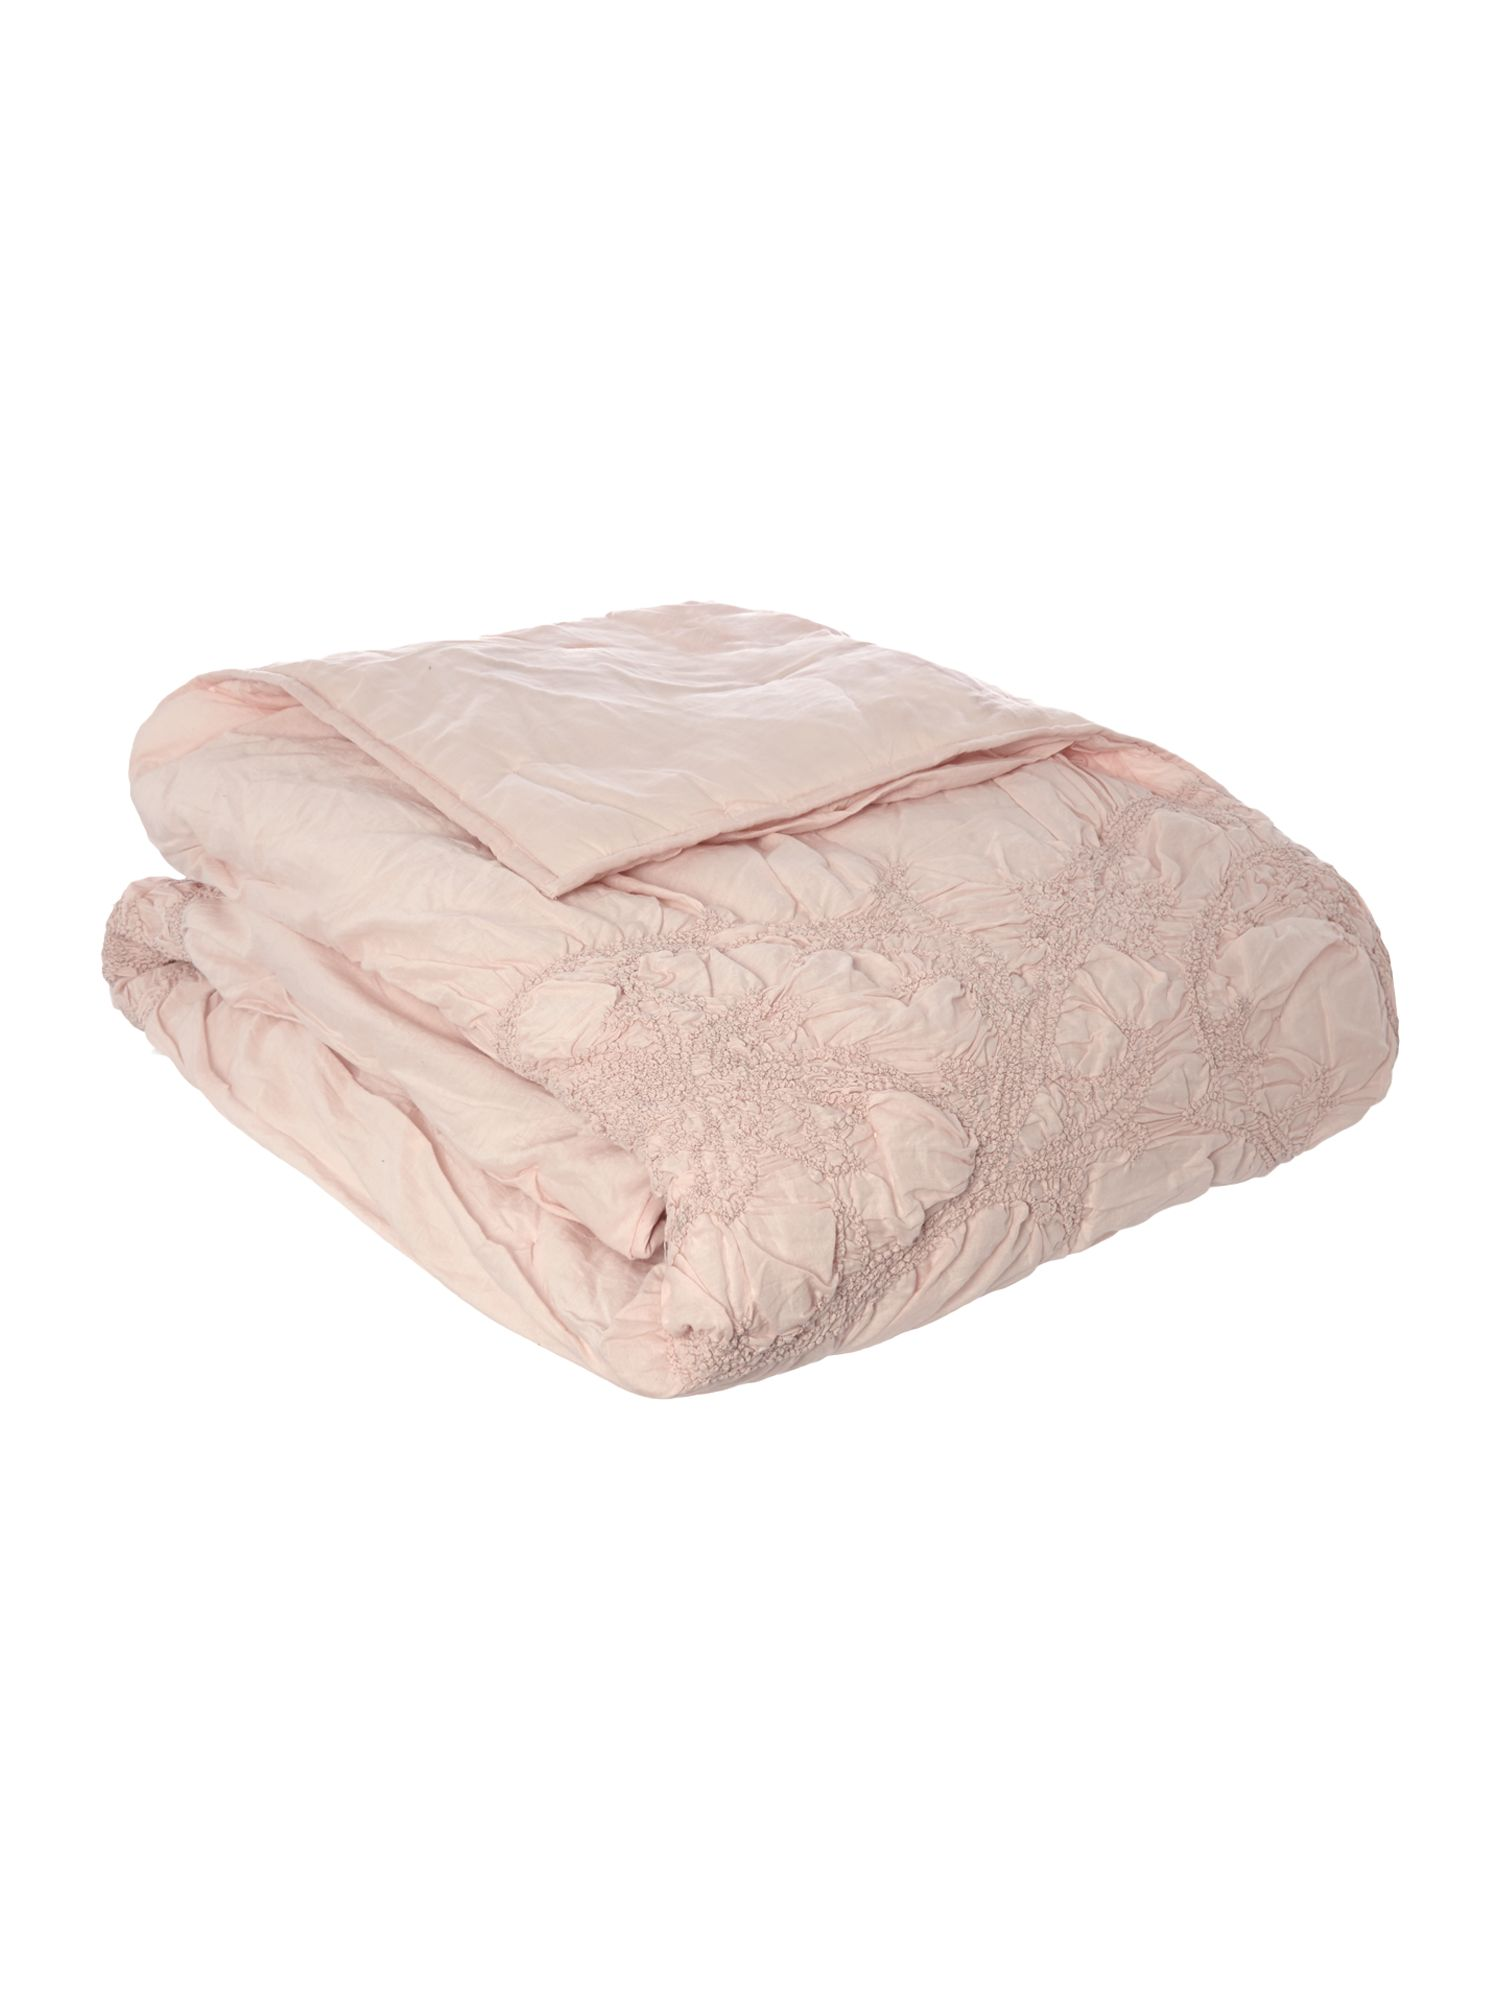 Shabby Chic Shabby Chic Soft pink voile bedspread